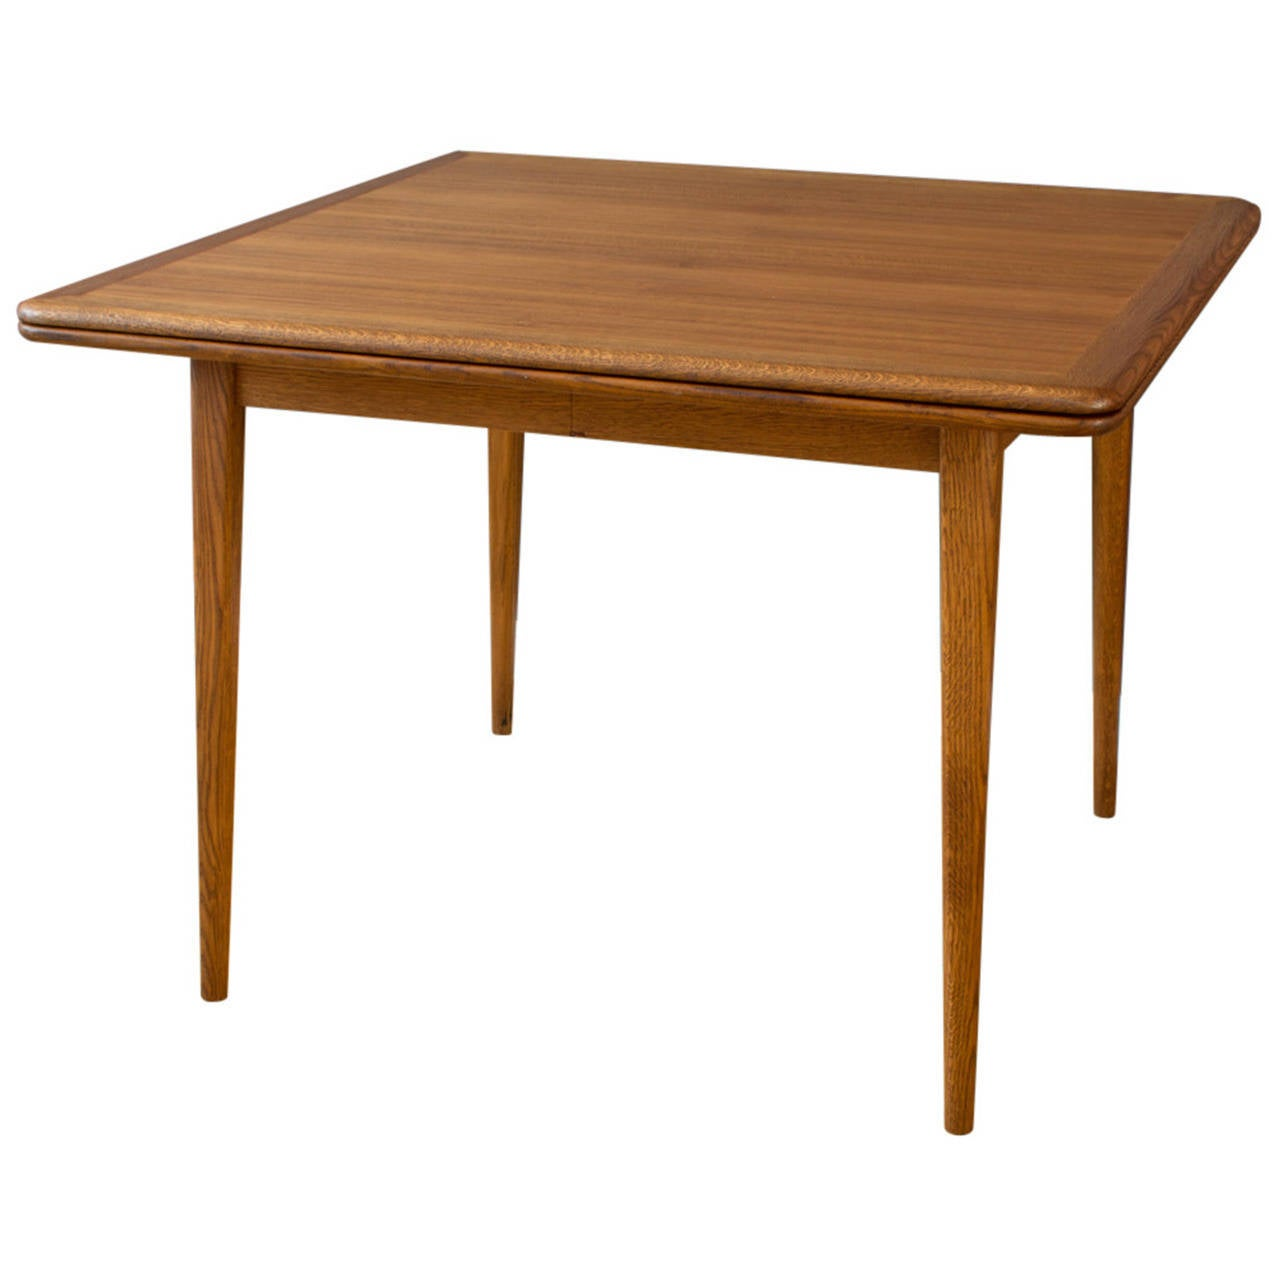 Vintage Mid Century Flip Top Dining Table At 1stdibs